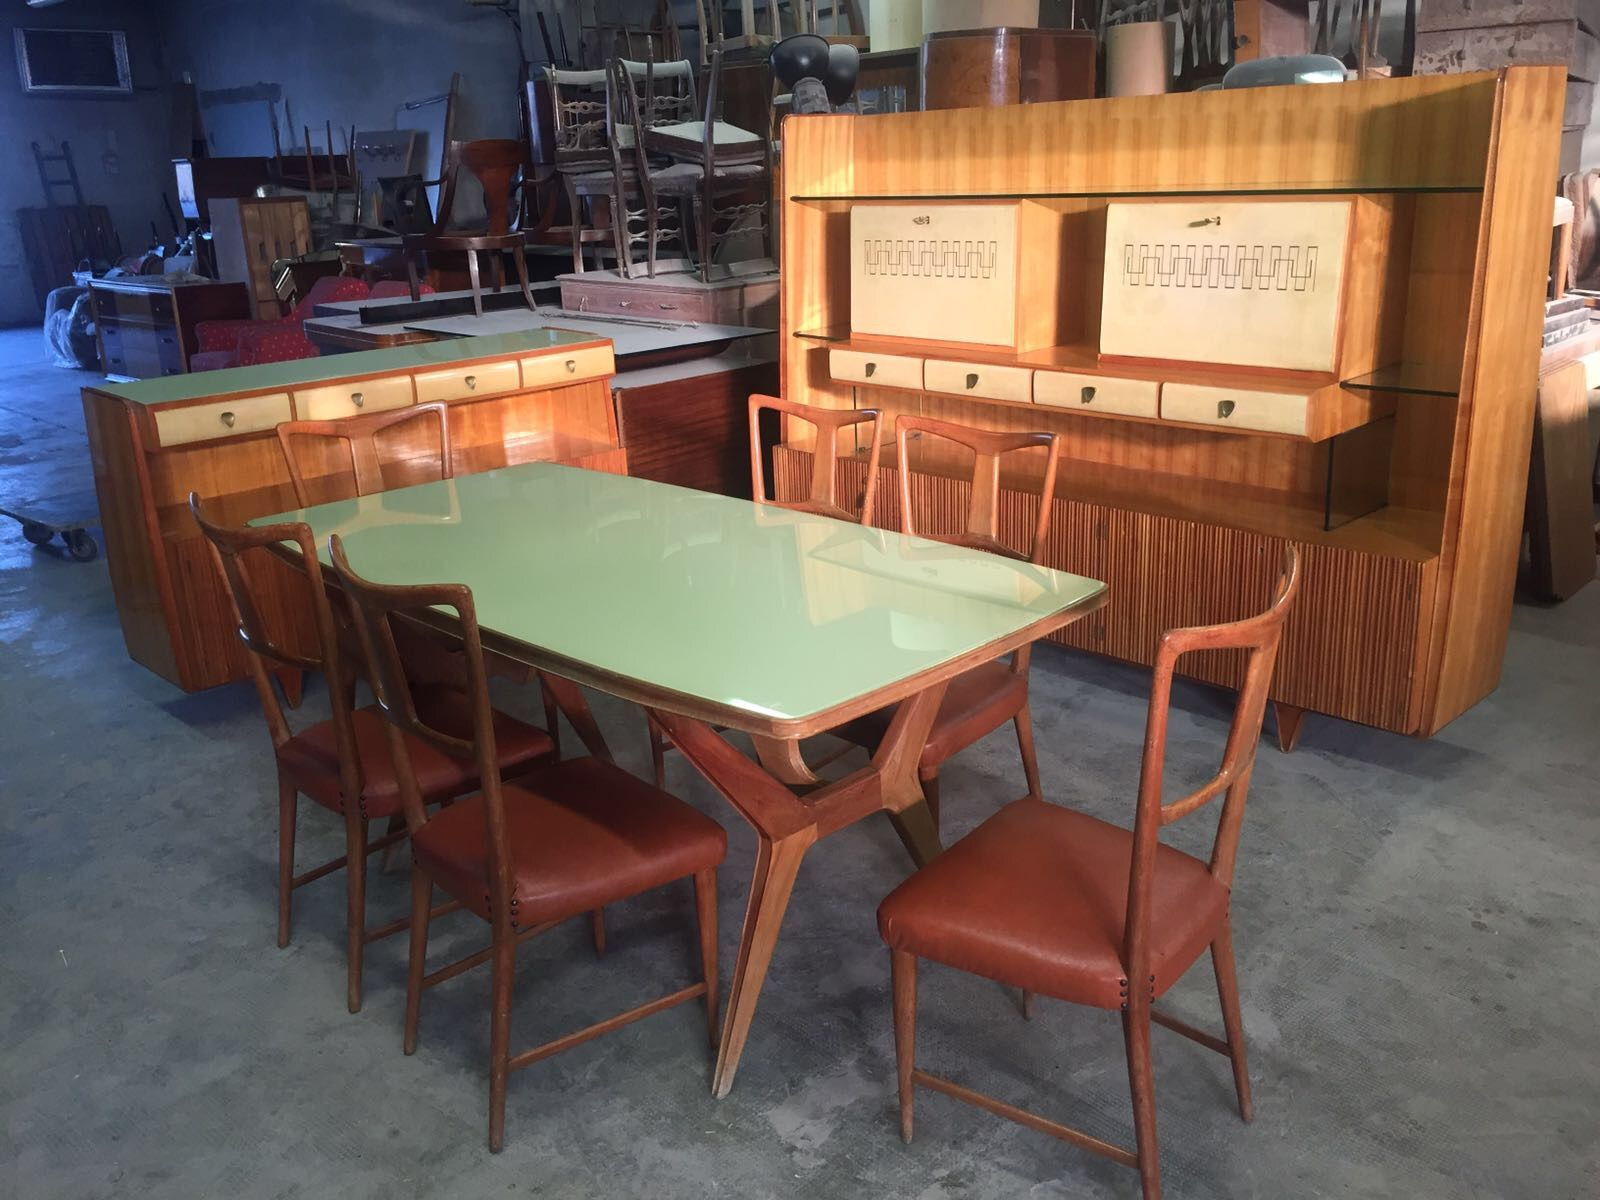 Italian Dining Room Set By Gio Ponti For La Permanente Mobili Cantu, 1940s,  Set Of 9